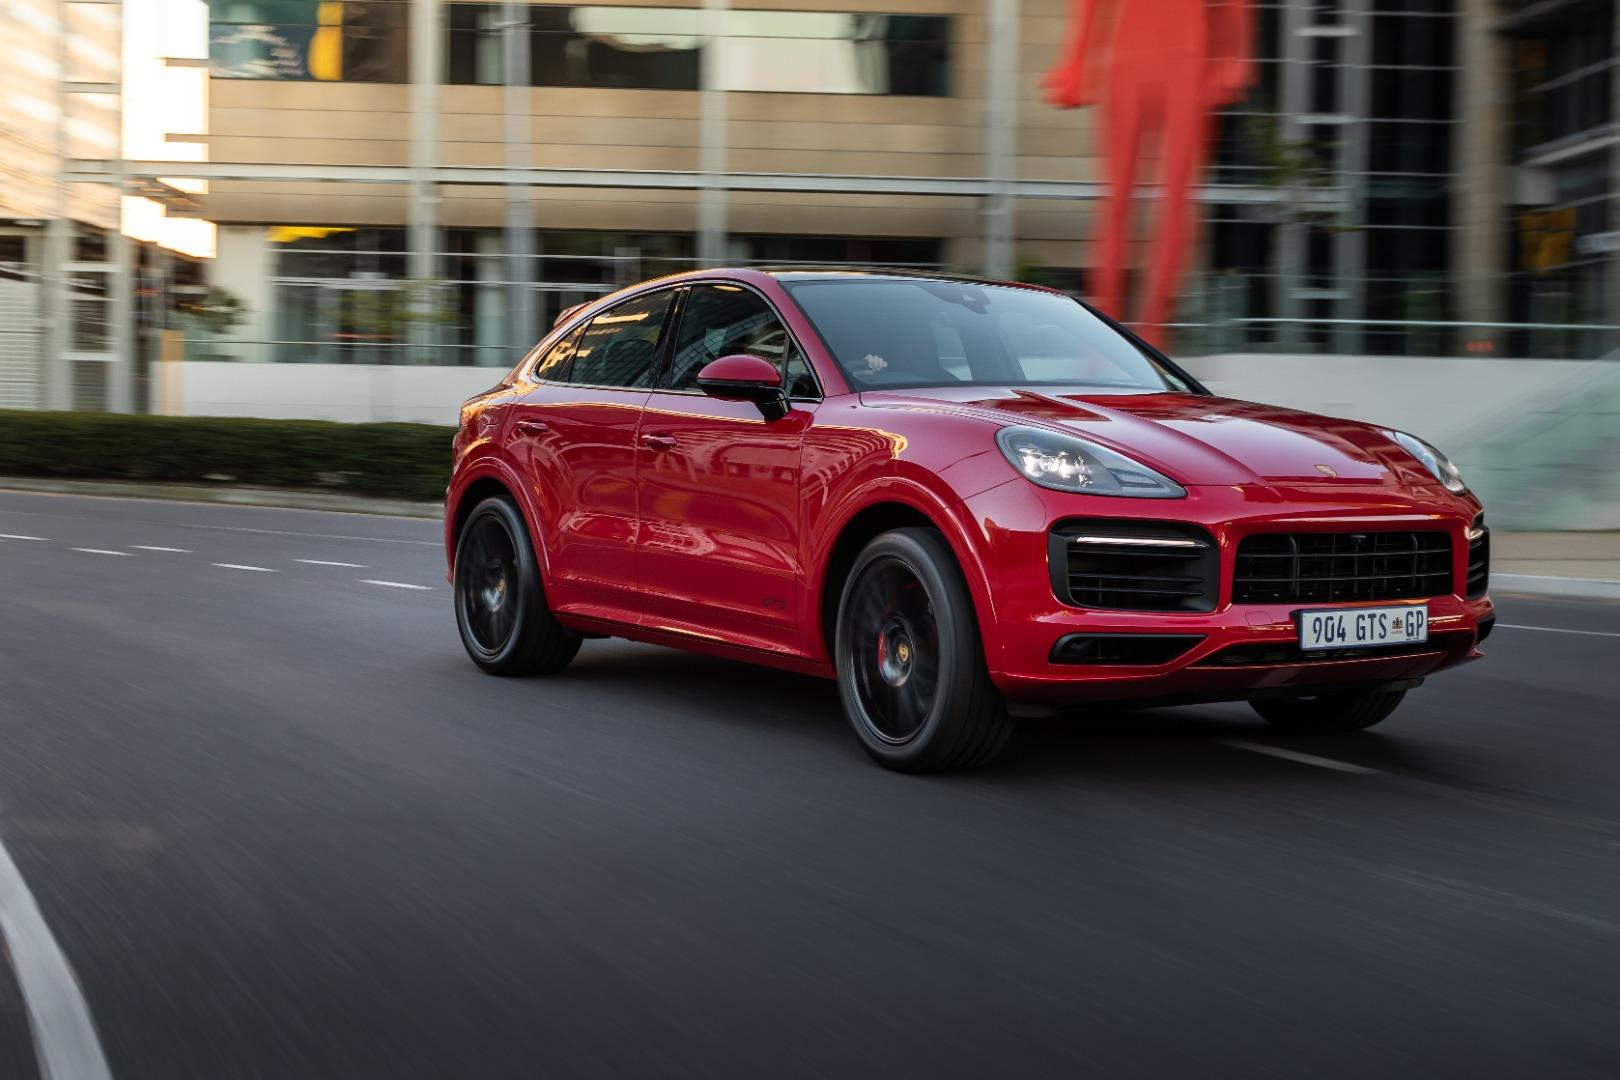 Porsche Cayenne Gts 2020 First Drive Impression The Return Of The V8 Motoring News And Advice Autotrader